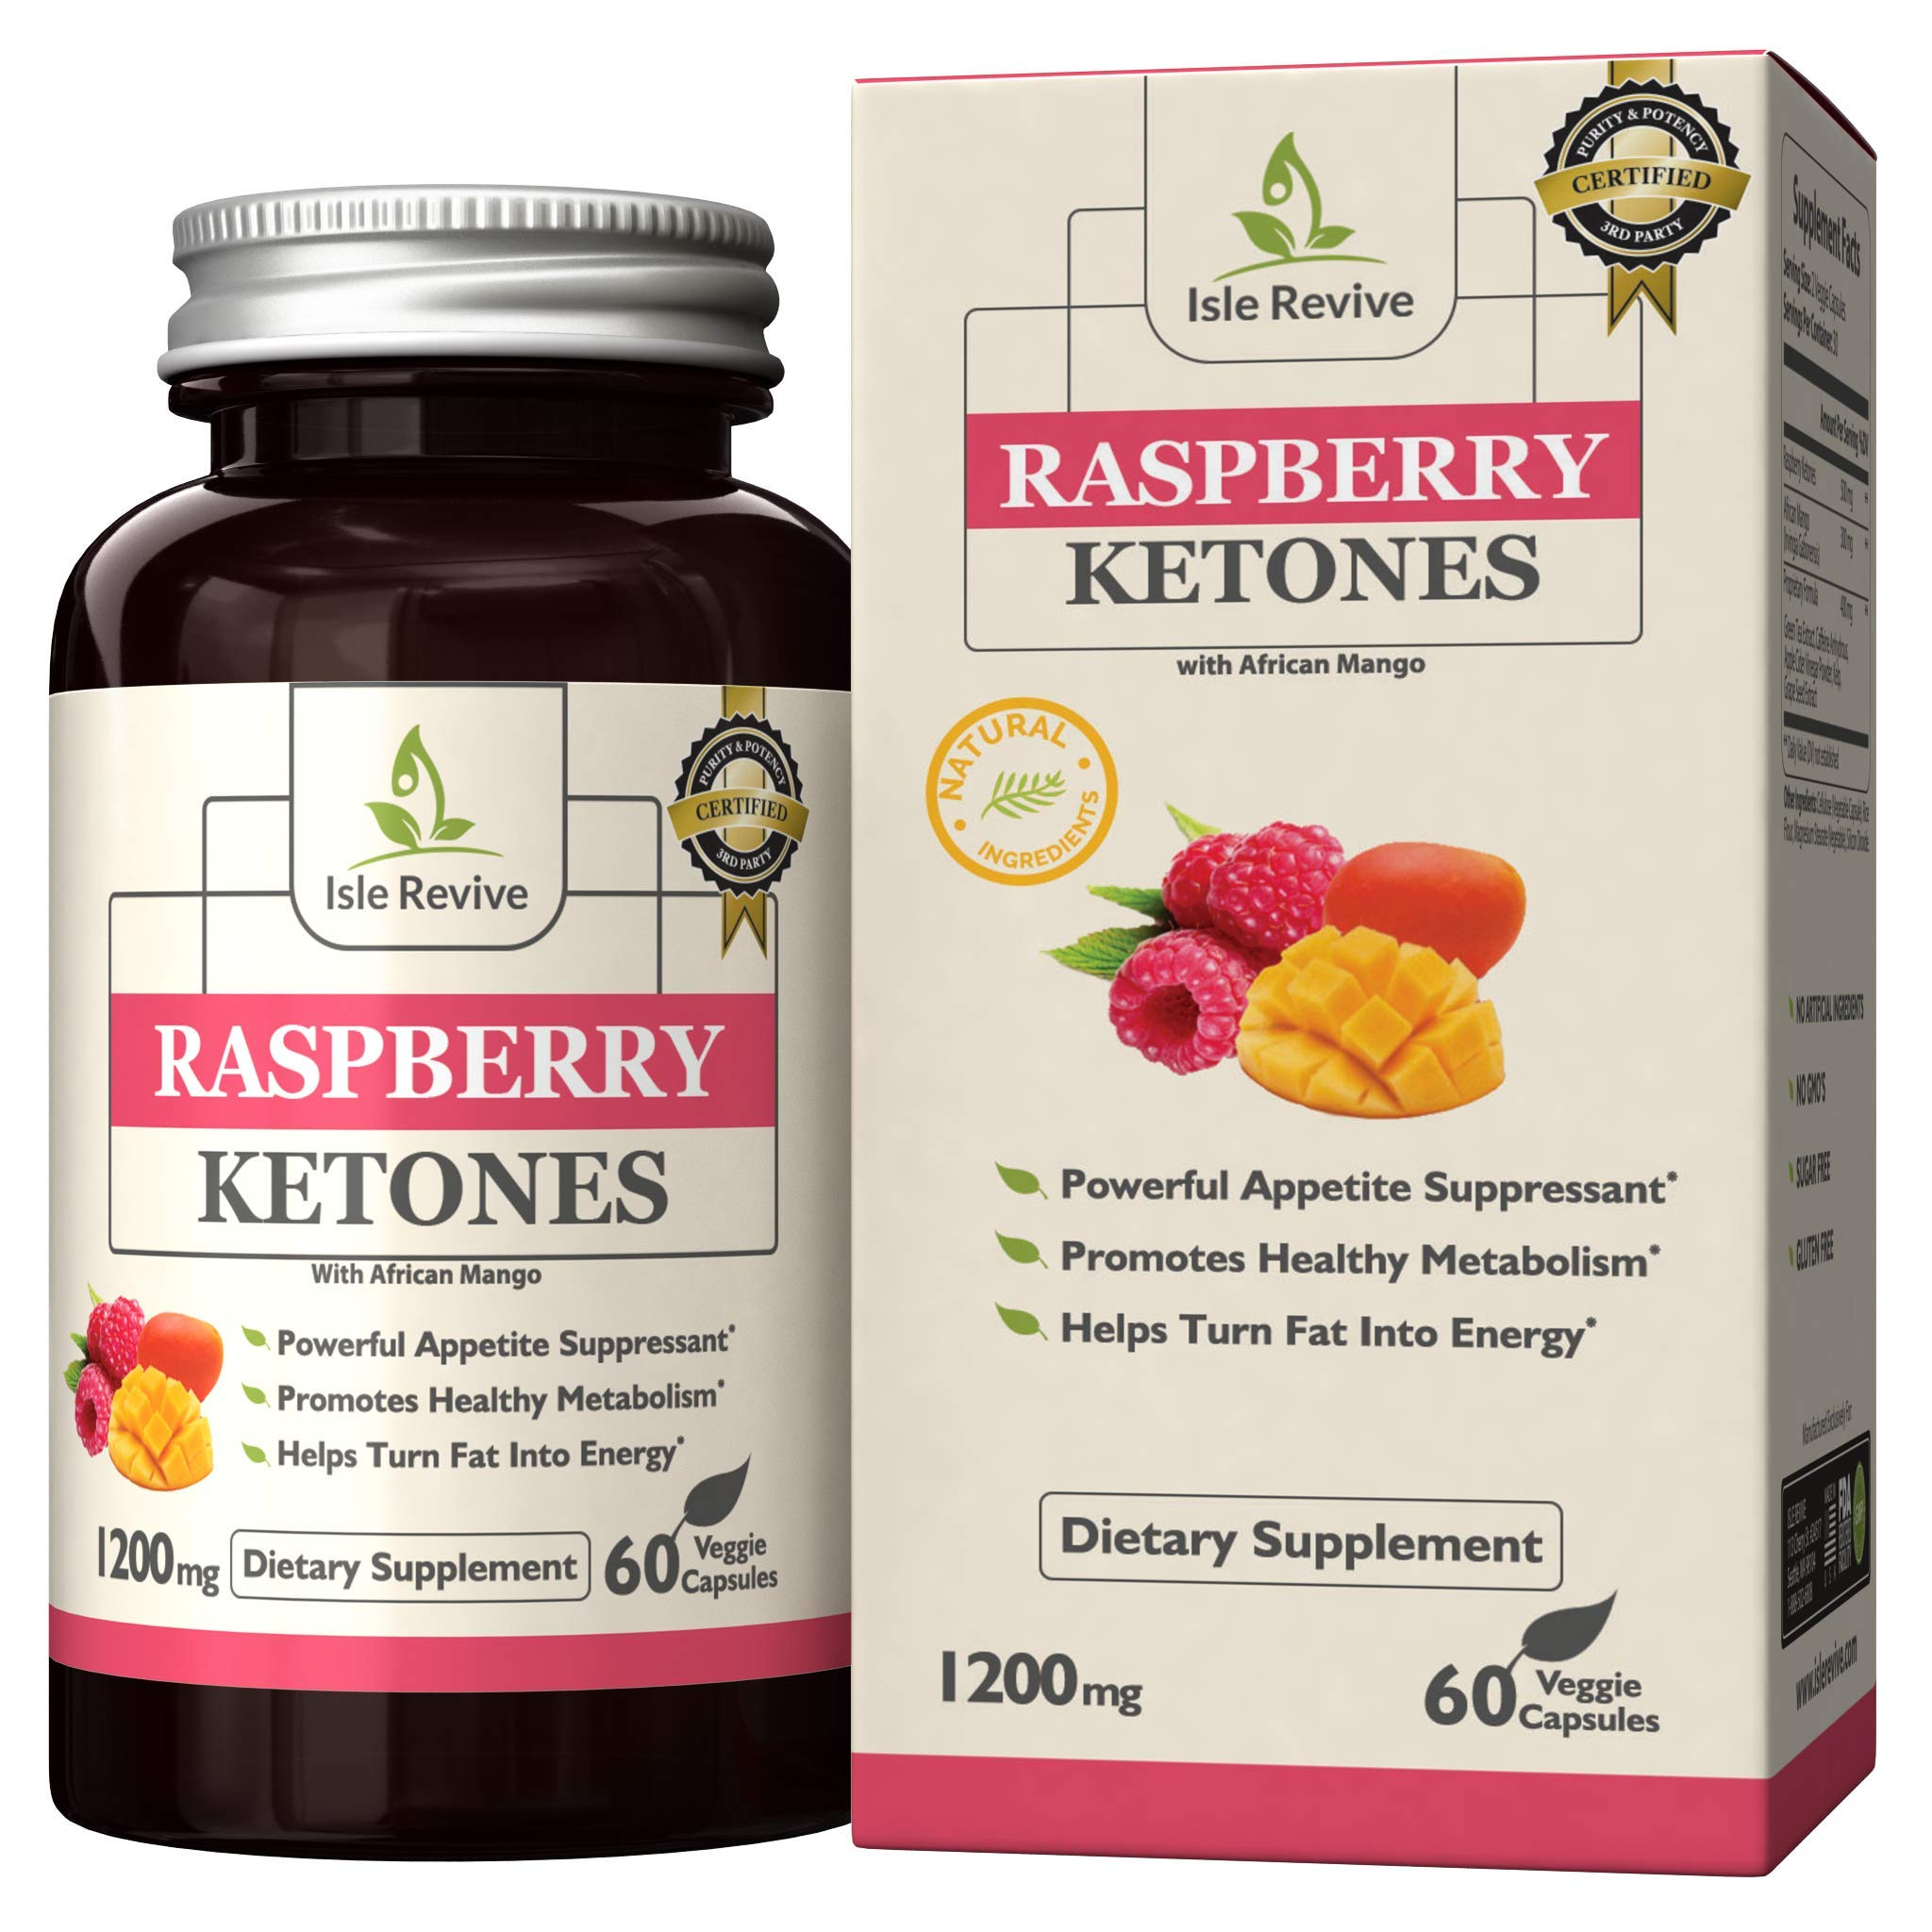 Raspberry Ketones Weight Loss Dietary Supplement with African Mango Extract, All-Natural Keto Diet Pills for Women and Men, Appetite Suppressant, Gluten Free, Non GMO (60 Capsules, 30 Day Supply)